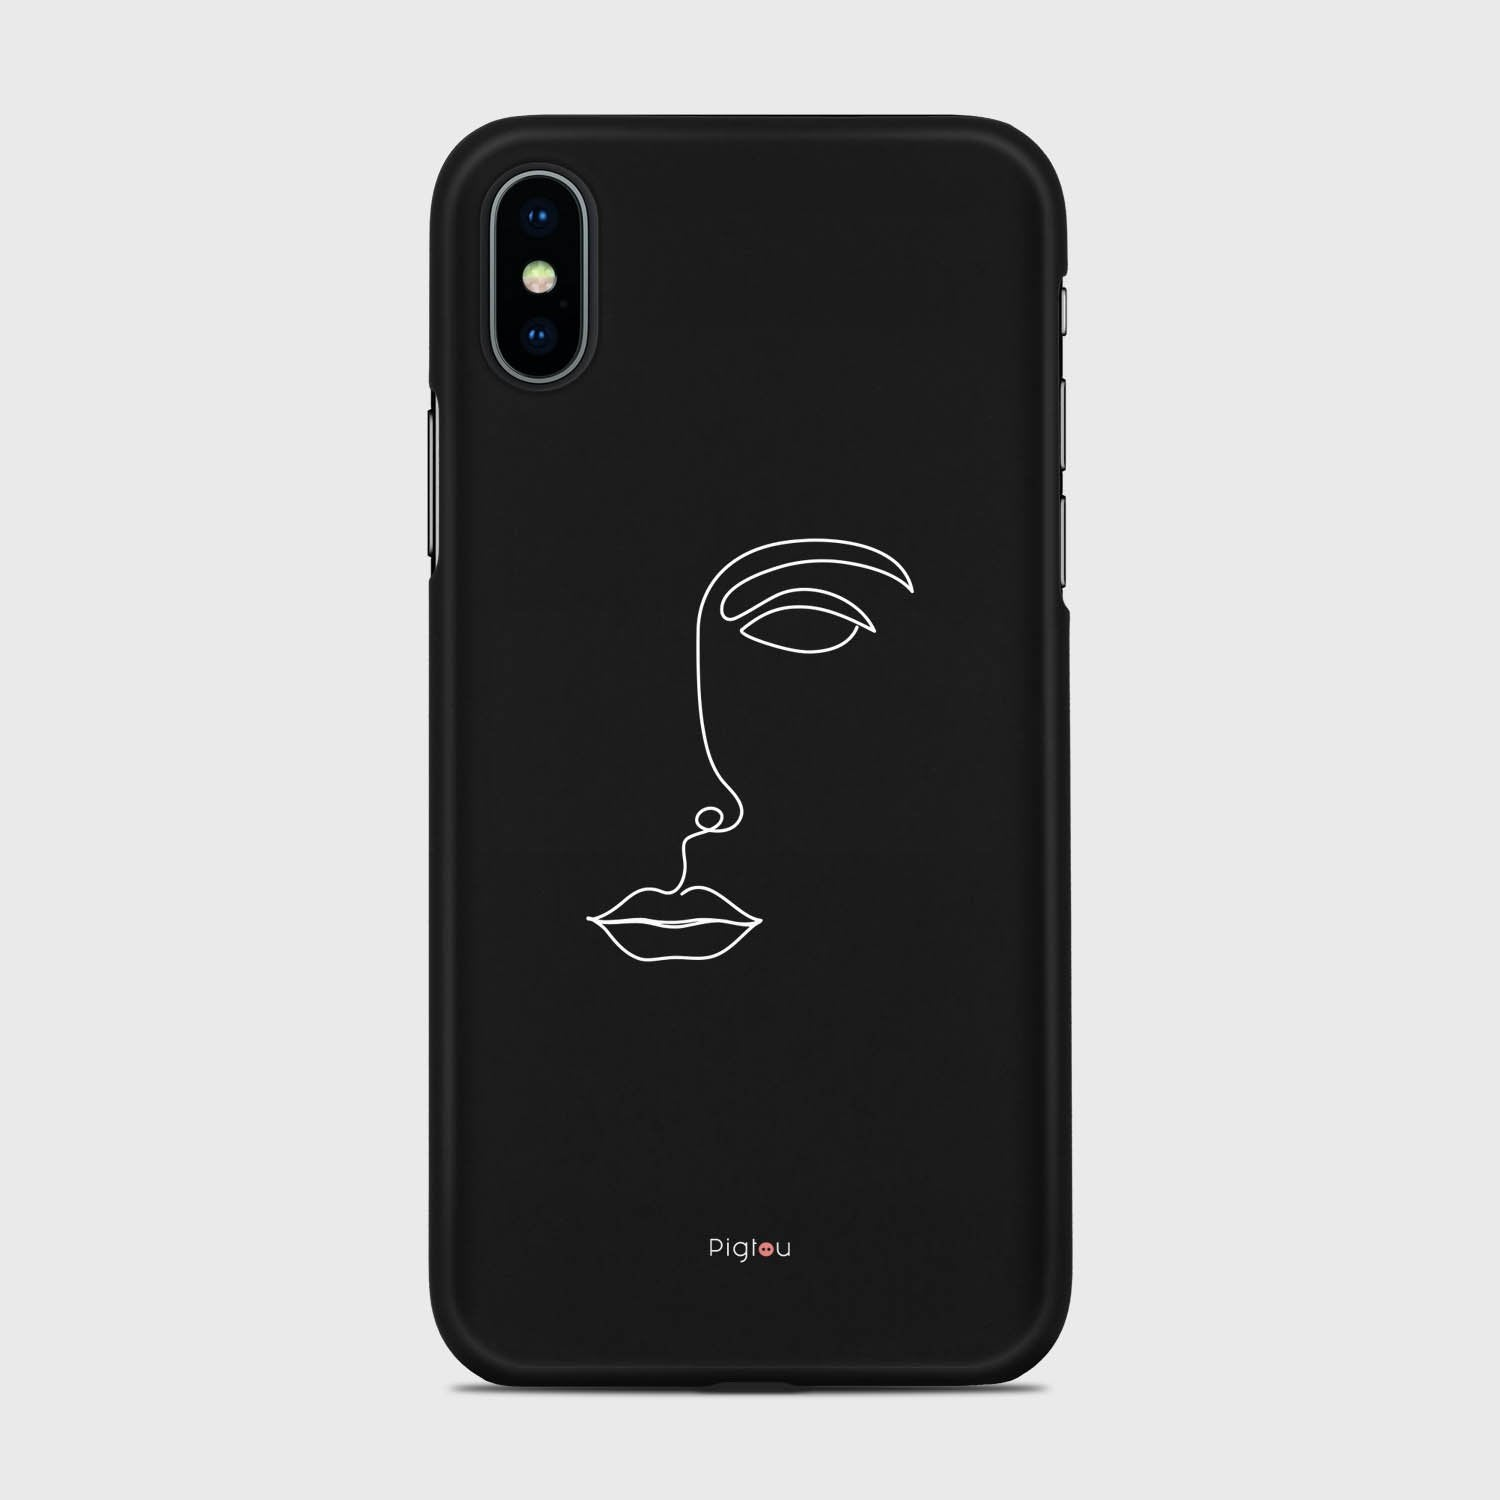 SILHOUETTE FACE iPhone 12 Pro cases | Pigtou